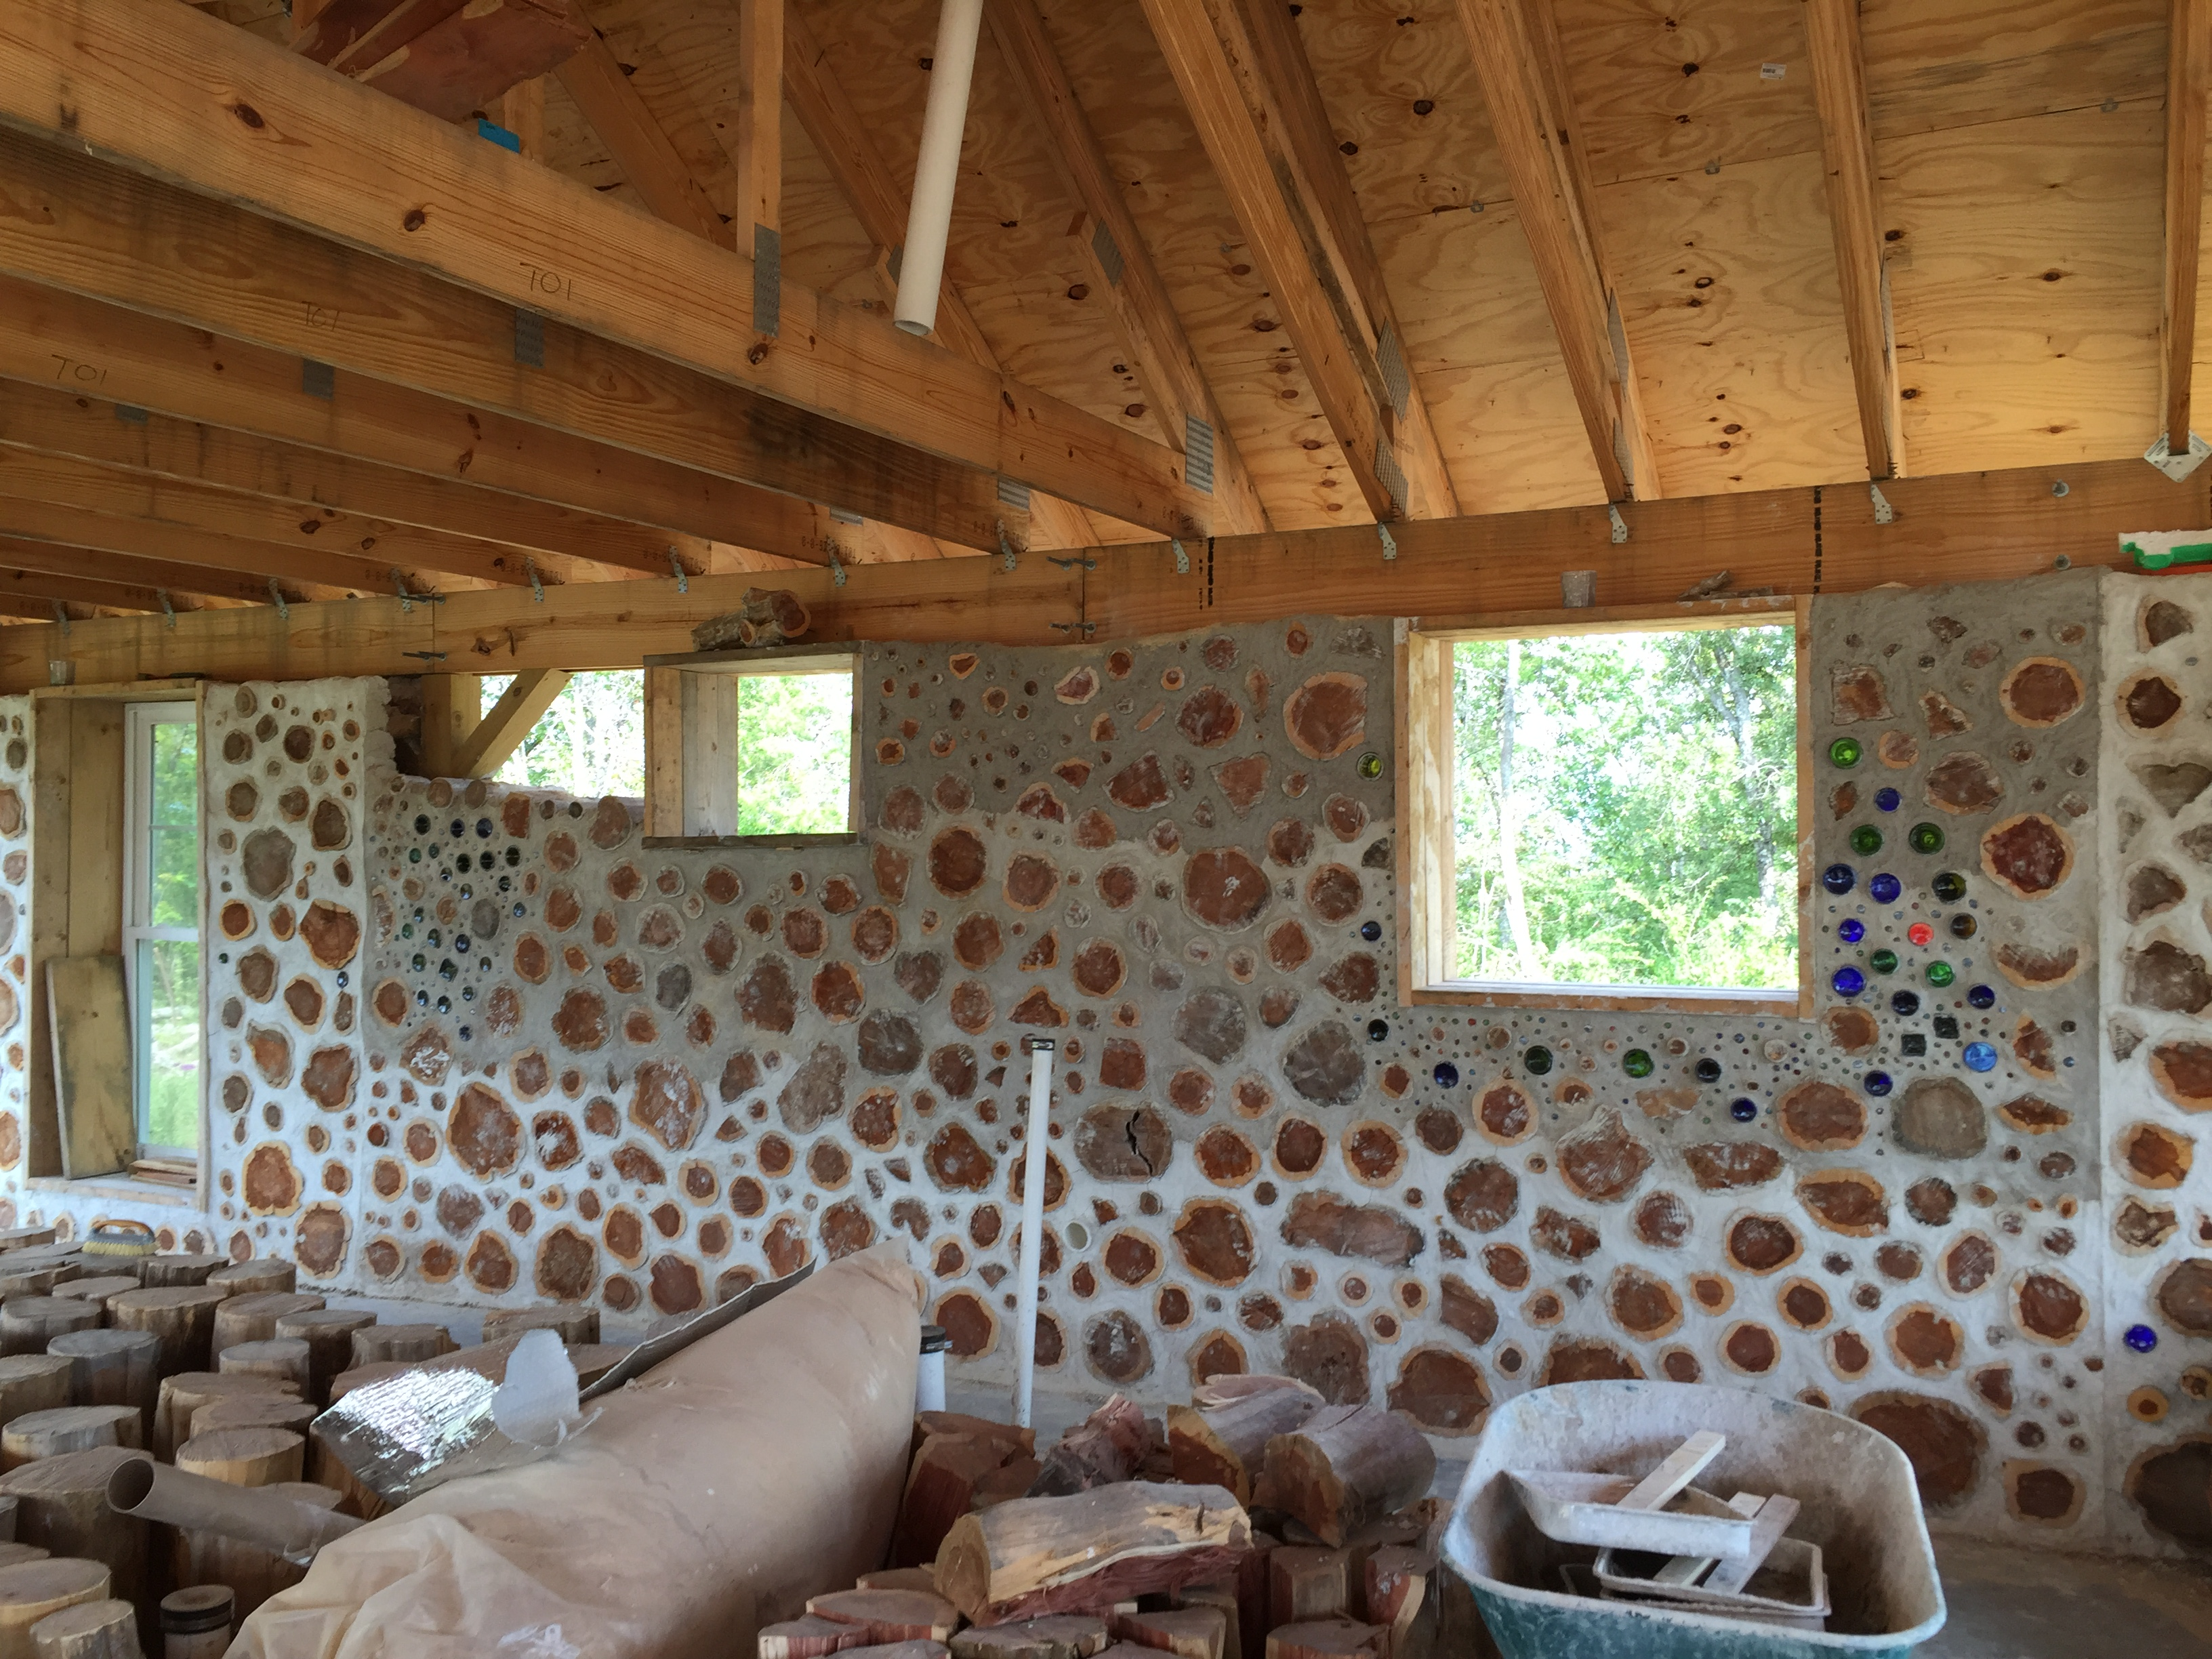 Interior cordwood wall in progress - at Accidental Hippies